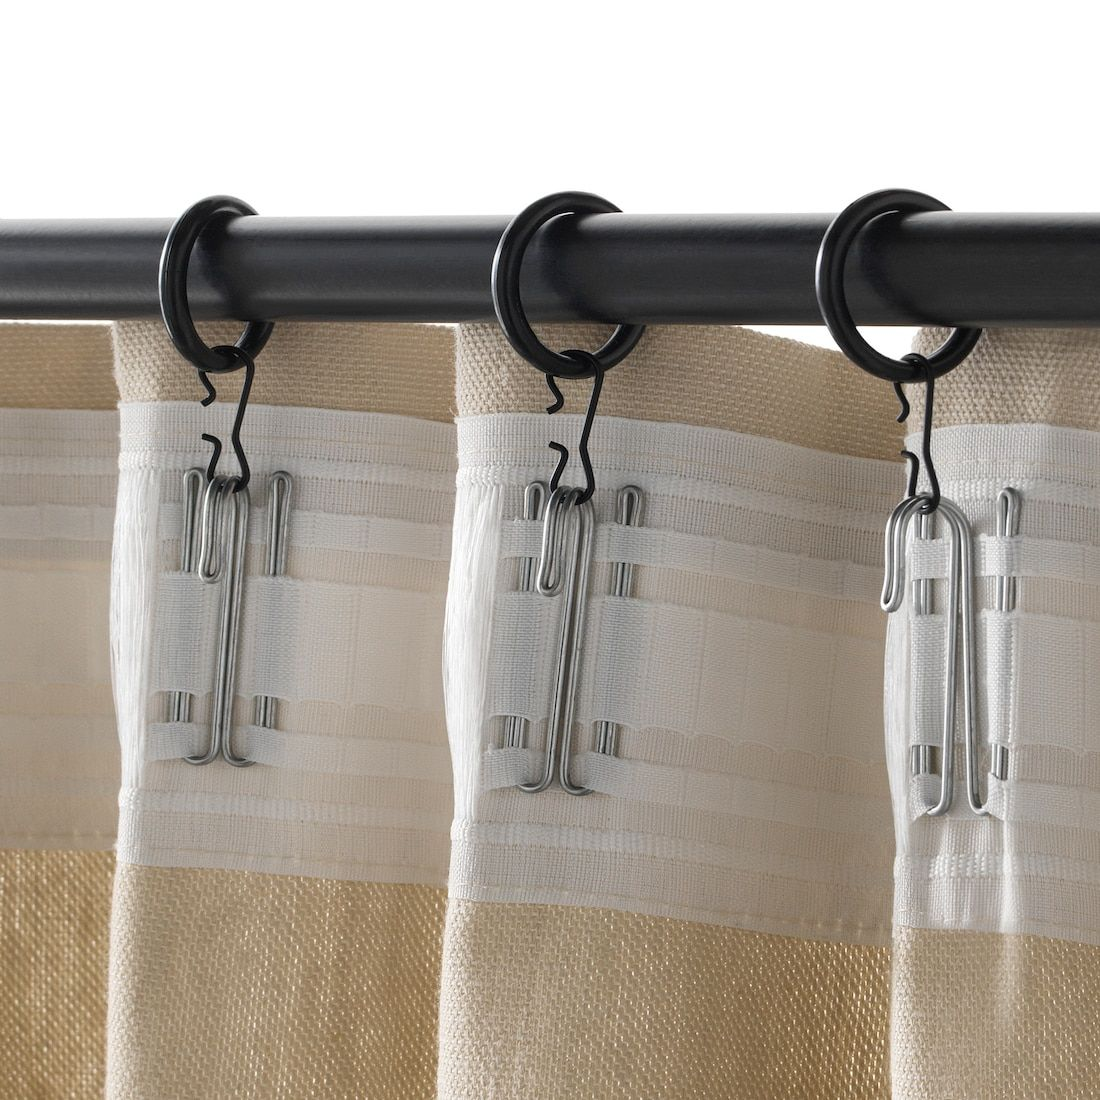 Syrlig Curtain Ring With Clip And Hook Black 1 Ikea In 2020 Curtains With Rings Curtain Rings With Clips Curtains